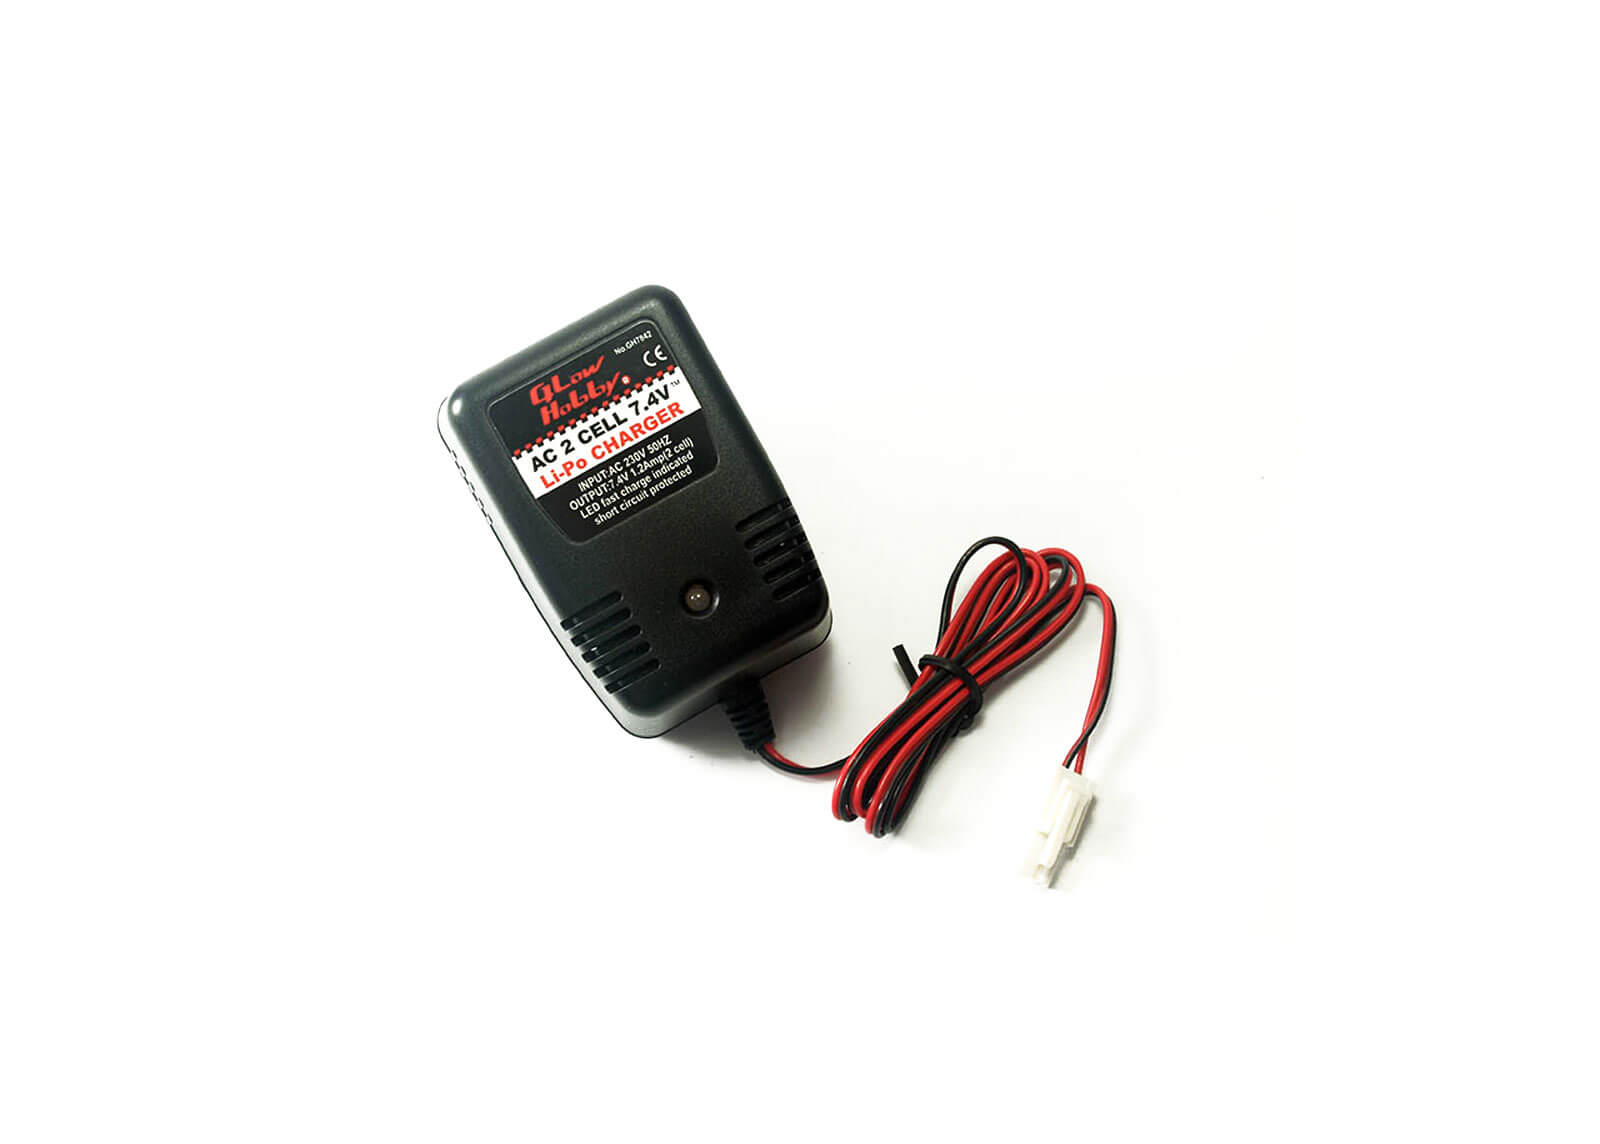 AC 2 CELL LI- POLYMER CHARGER/ 230V (EUR Type) - Modify Airsoft Accessories